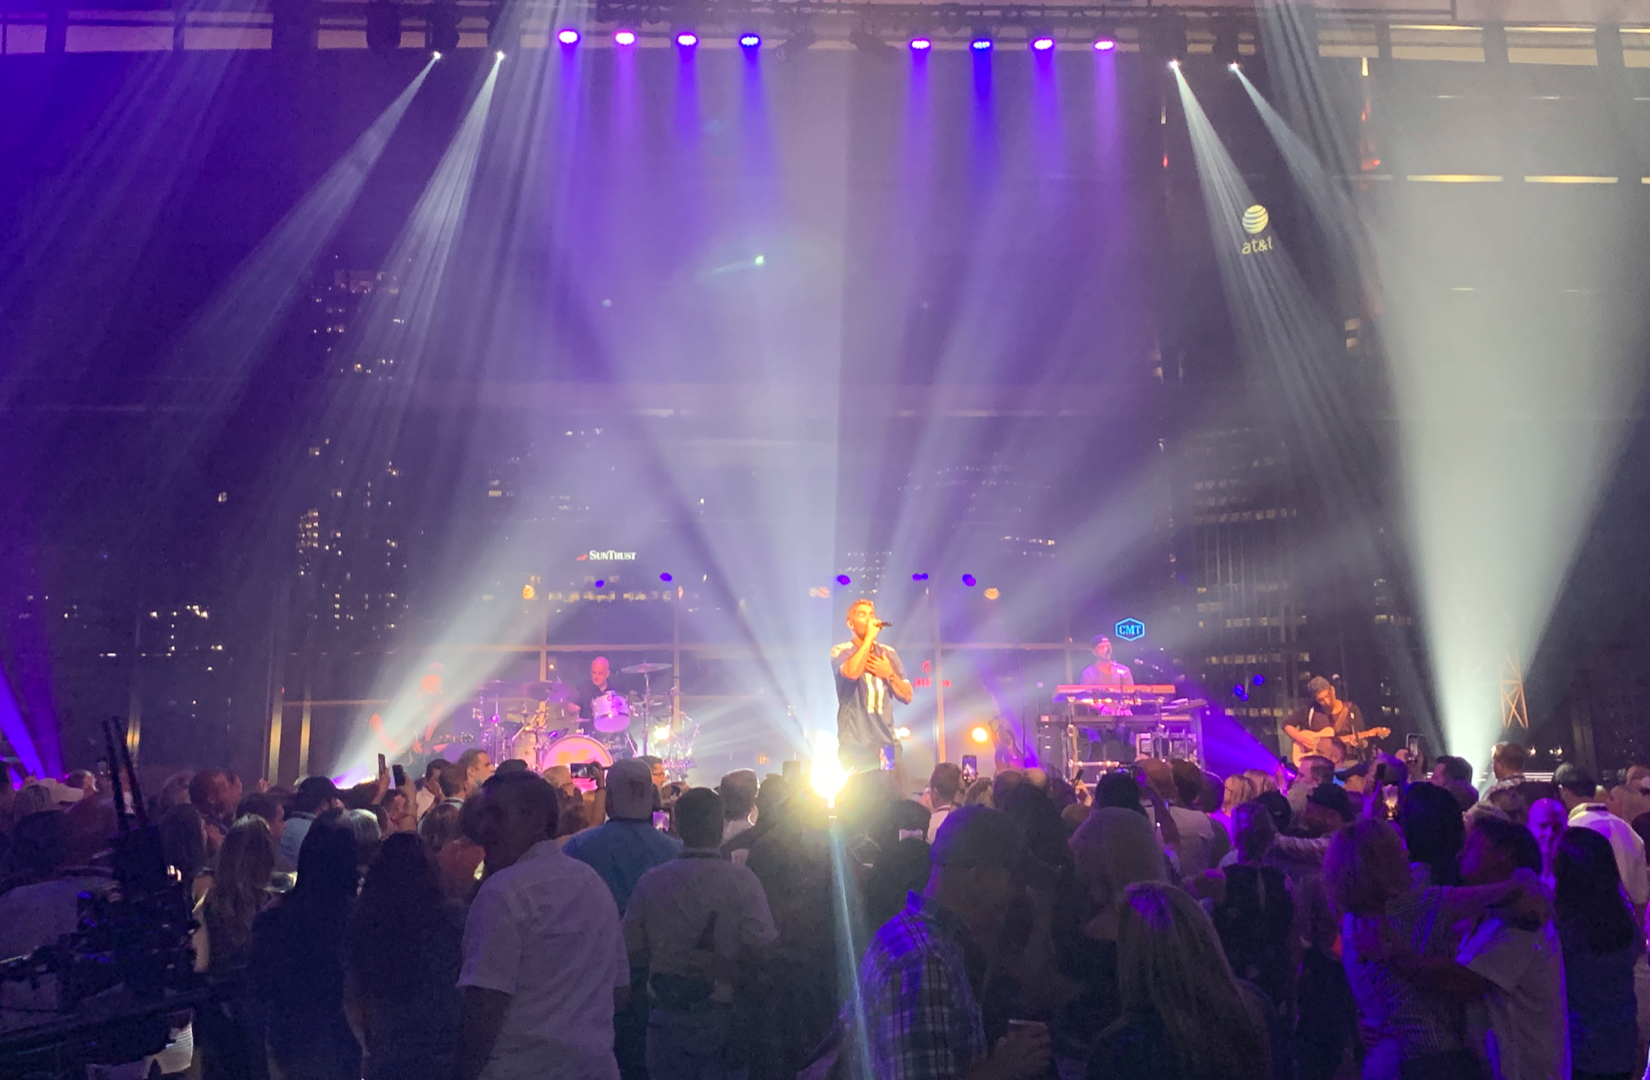 Hilton Honors Party w/ Brett Young